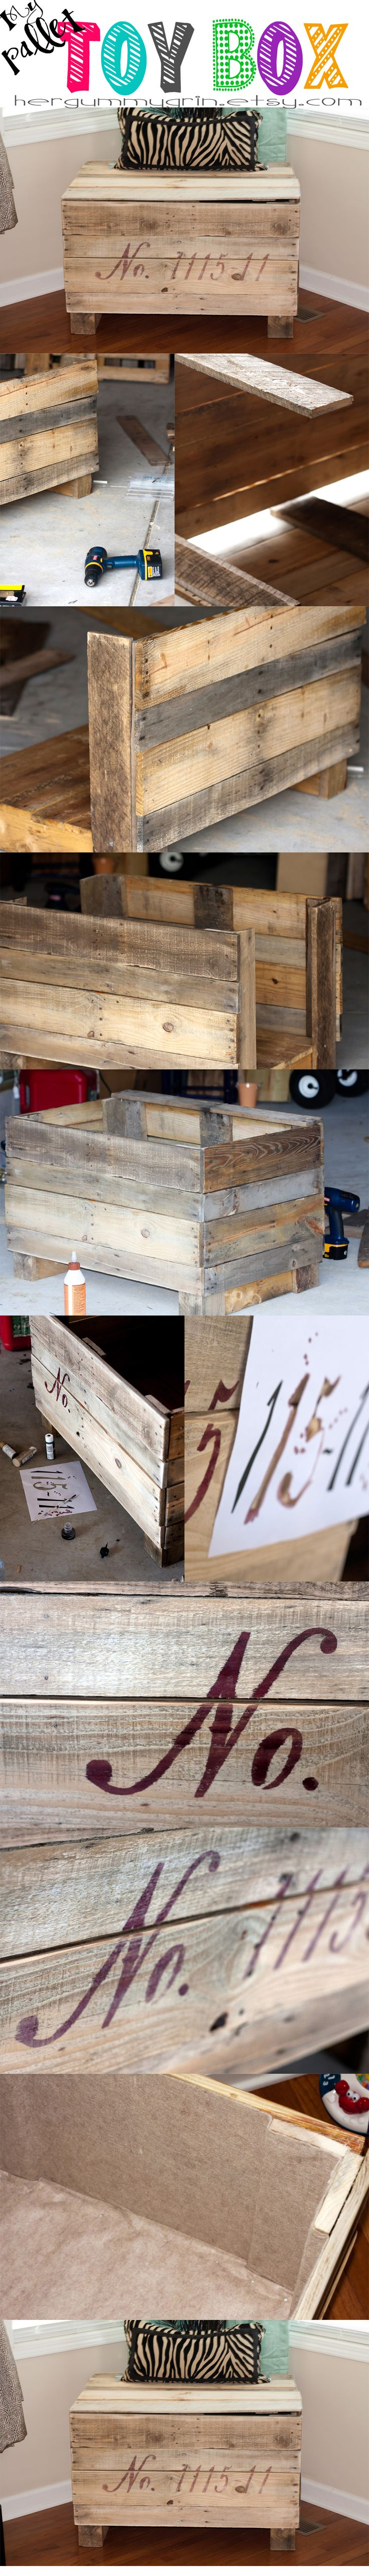 "My Pallet Toy Box - Made from deconstructed pallets. Felt Lined. I made the ""stencil"" & used India Ink to add our daughters birthday on the front then sanded down. In total - UNDER 12 bucks!"